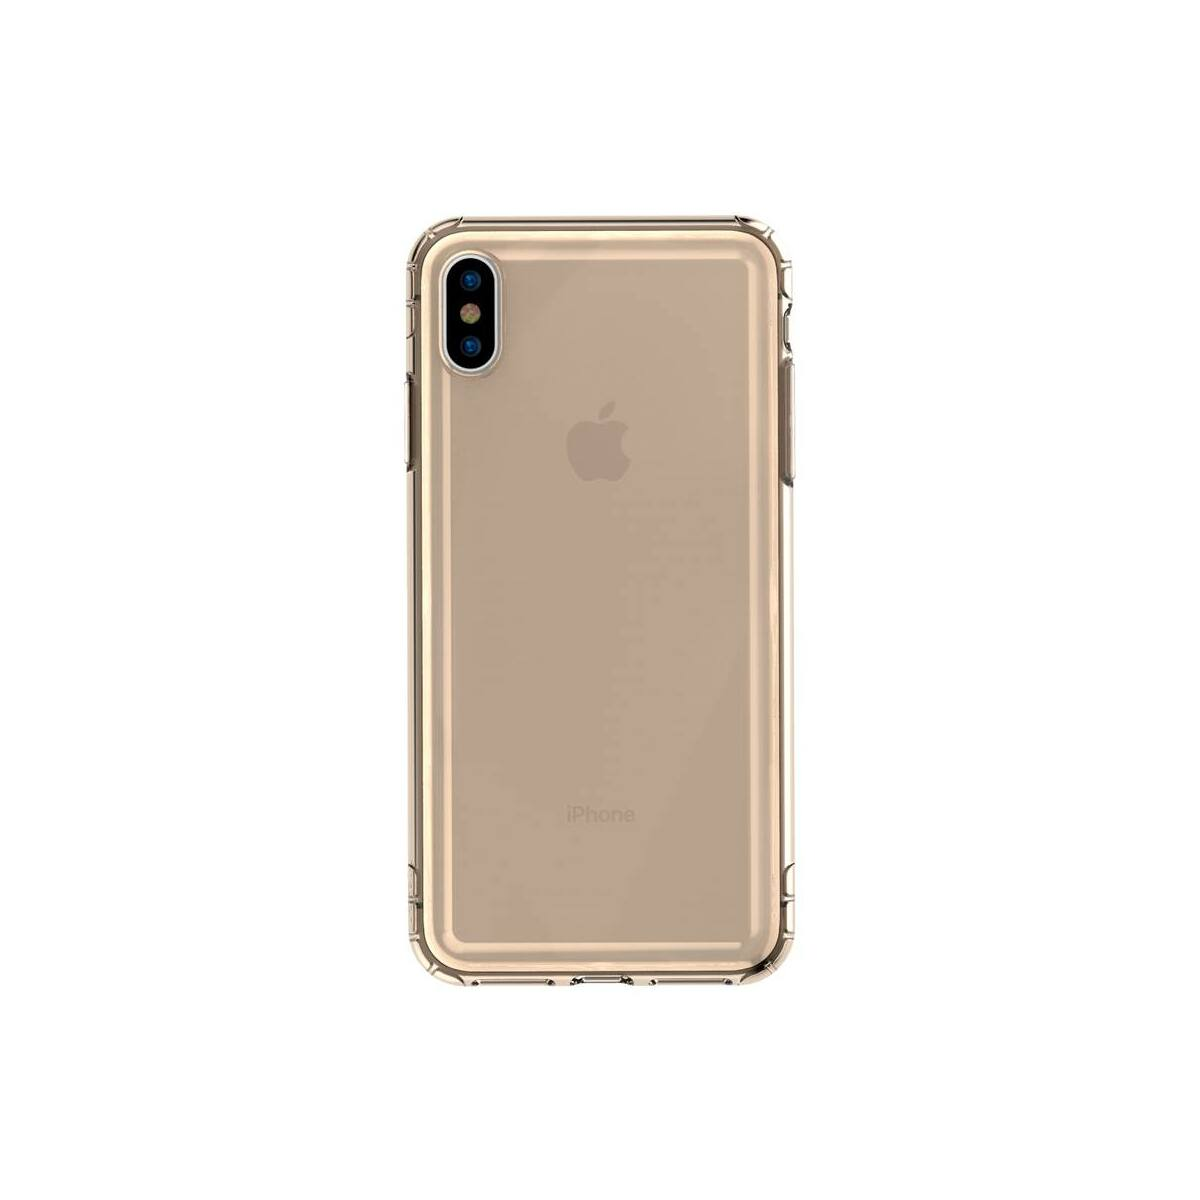 Baseus iPhone XS tok, Safety Airbags, átlátszó arany (ARAPIPH58-SF0V)